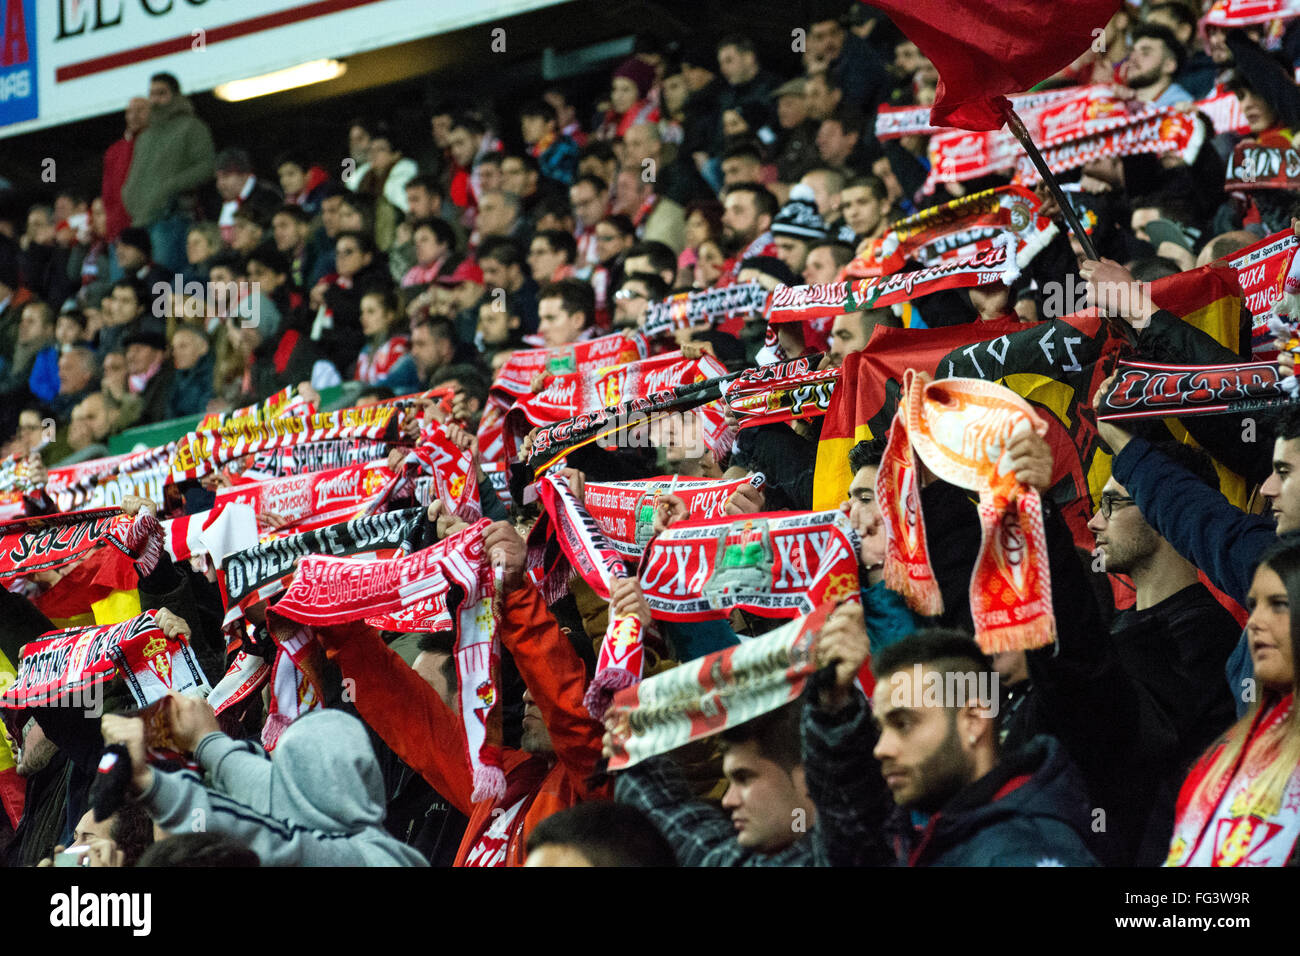 Gijon, Spain. 17th February, 2016. Real Sporting de Gijon's supporters with scarves during football match of - Stock Image